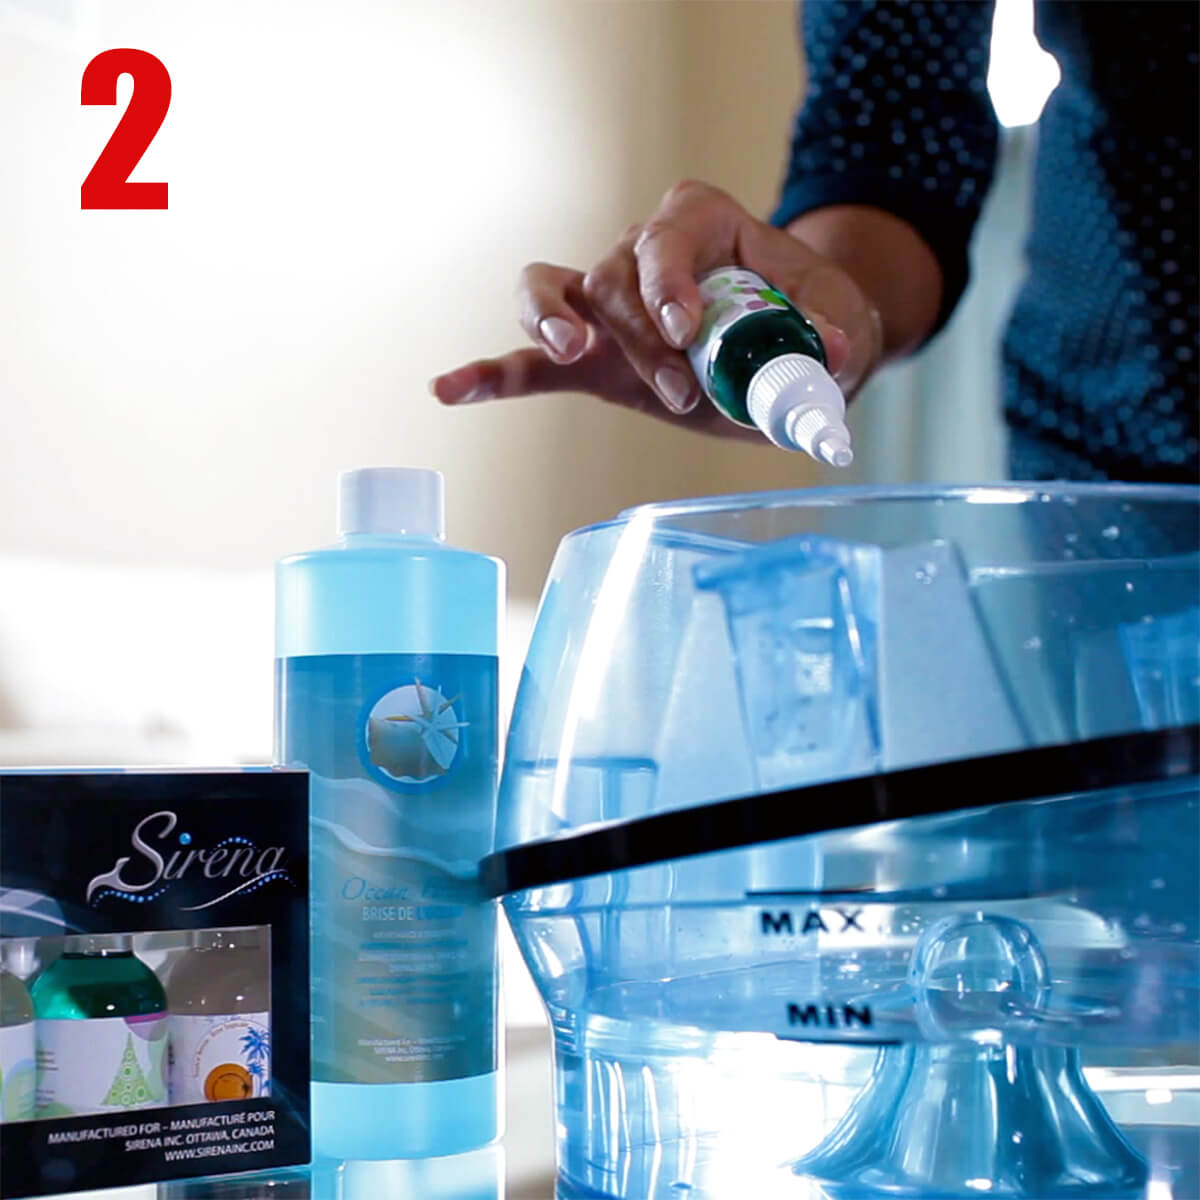 How To Use Your Sirena Vacuum Cleaner - Step 2